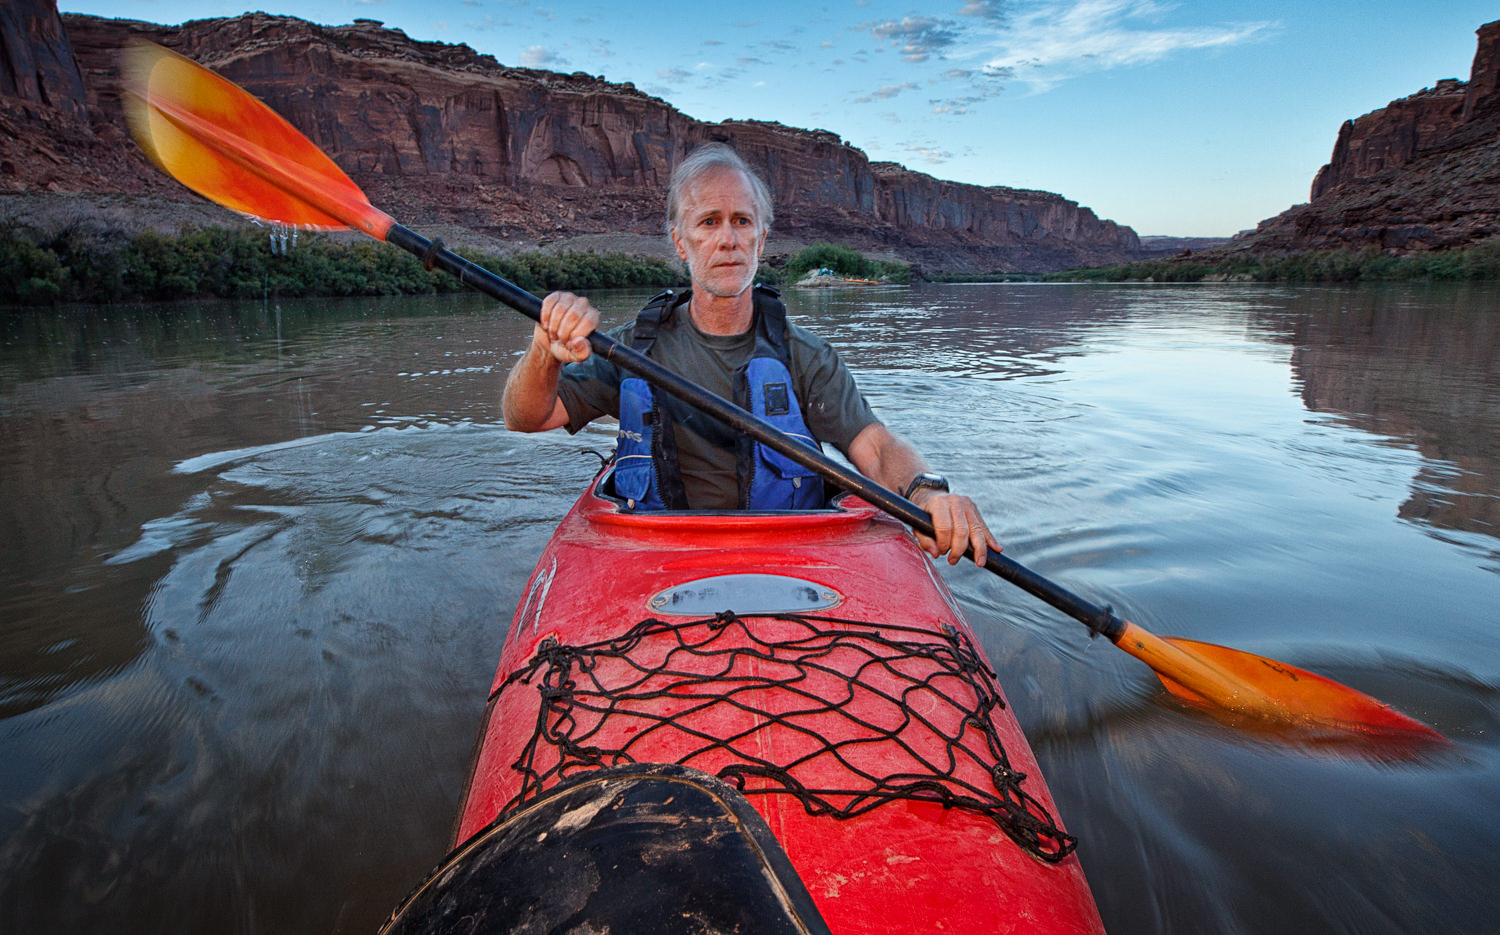 I clamped a Canon 5DMII with a flash and warming filter to the front of my kayak and then went paddling off around sunset. I purposely used a slower shutter speed to get a little blur in the paddles.